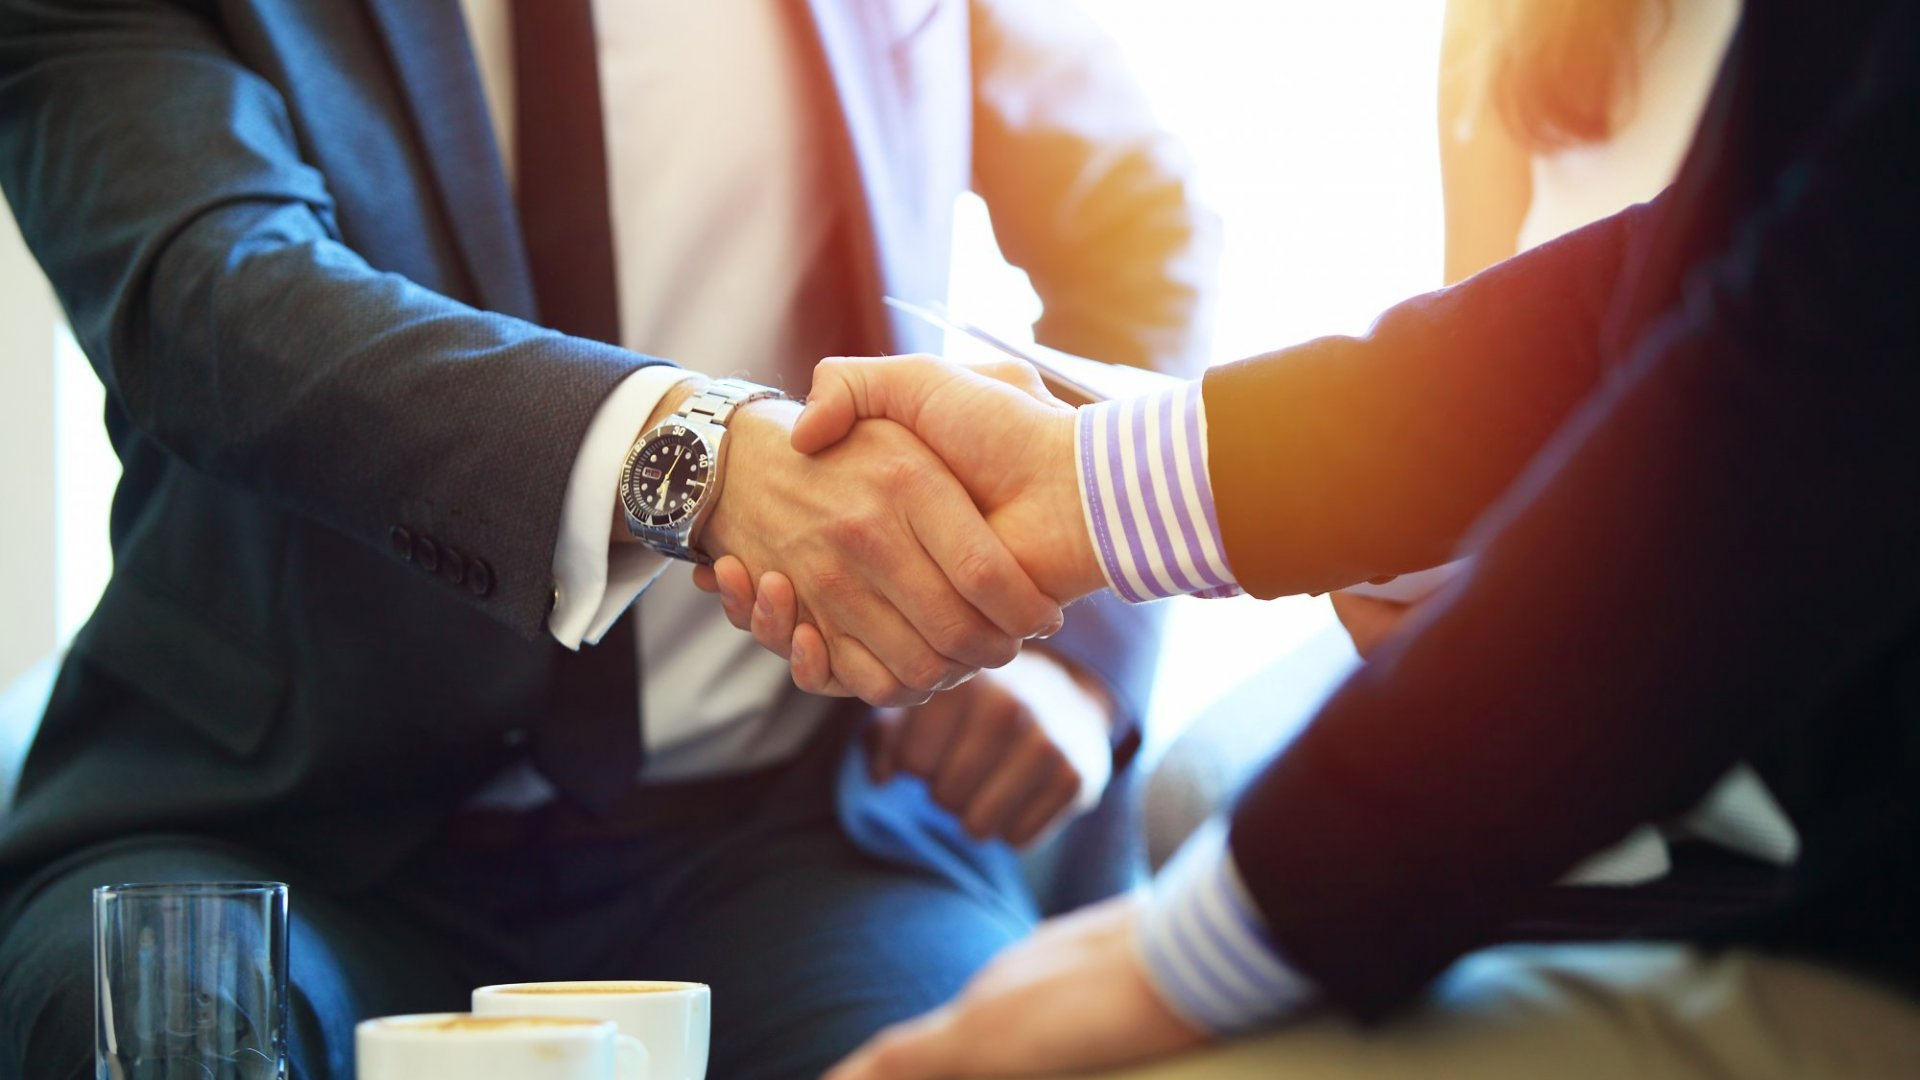 This Simple Technique Will Make You a Much Better Negotiator